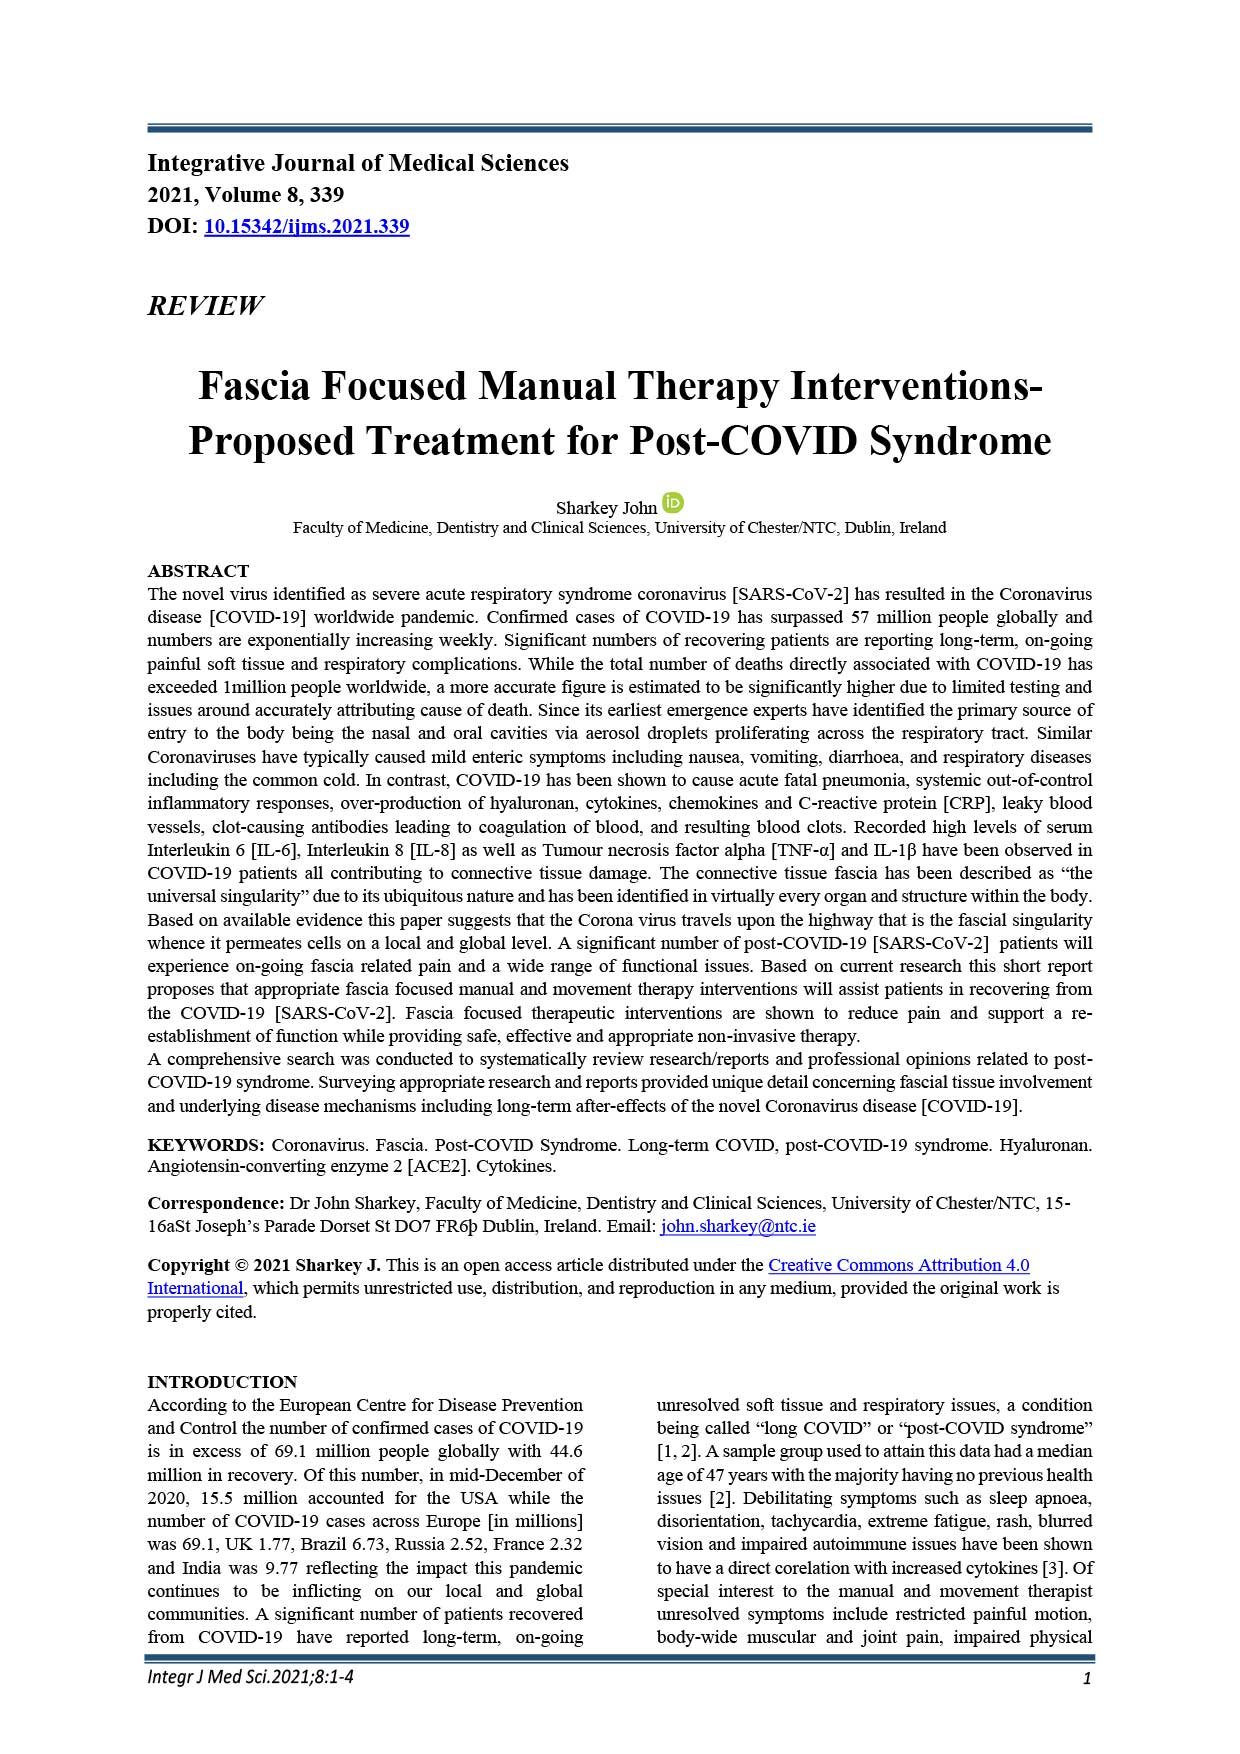 PDF) Fascia Focused Manual Therapy Interventions-proposed ...